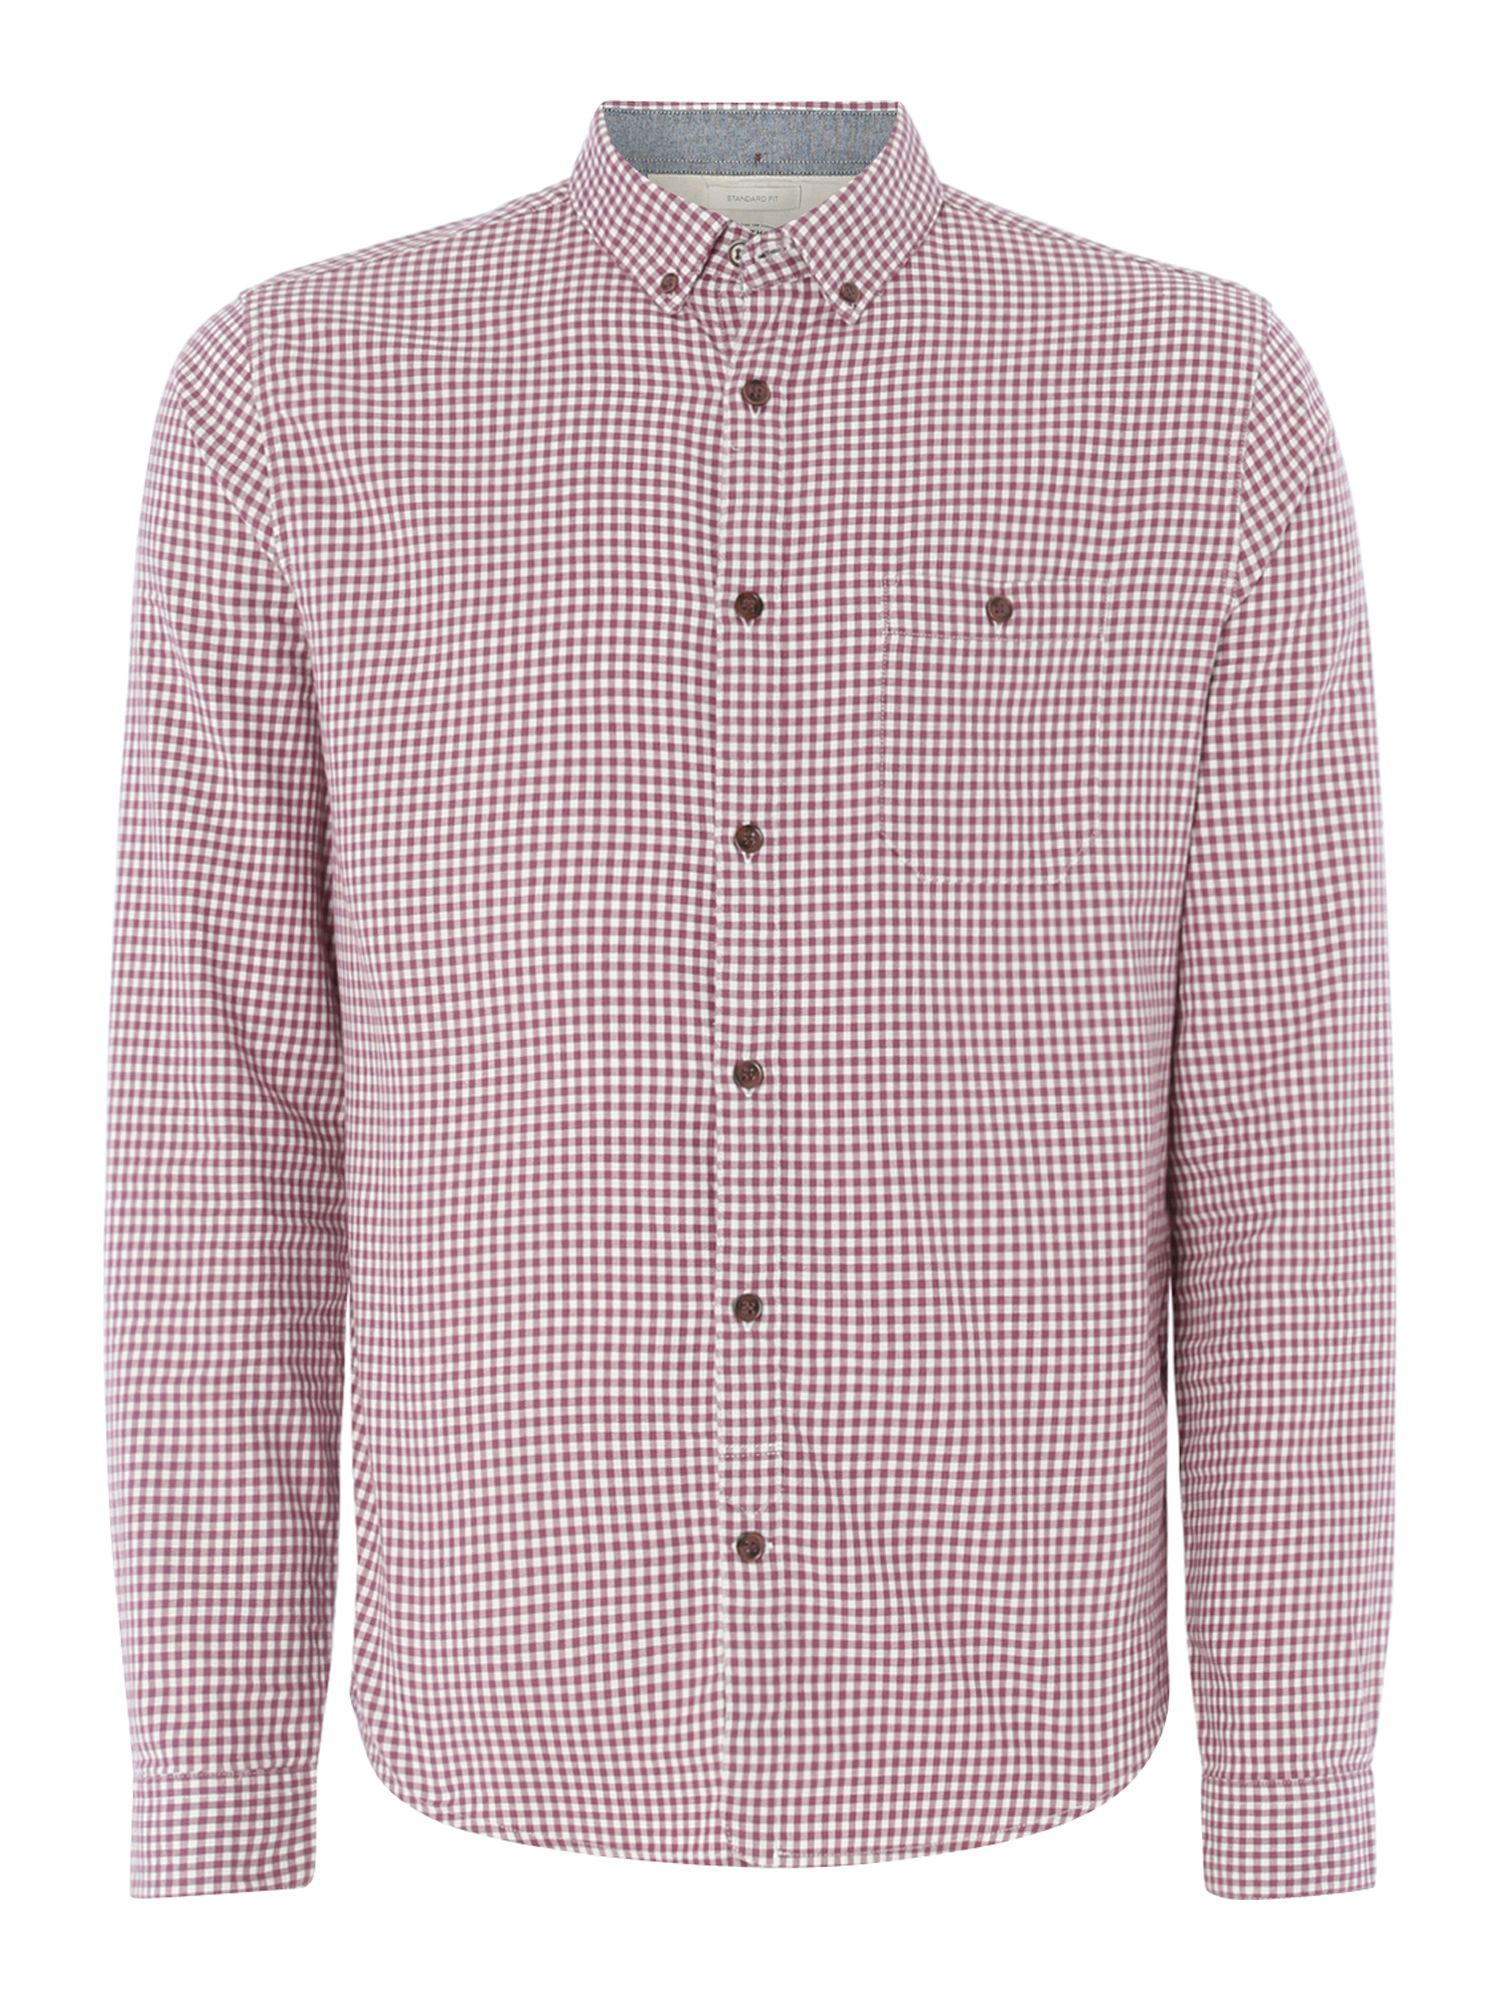 lionel check long sleeved shirt